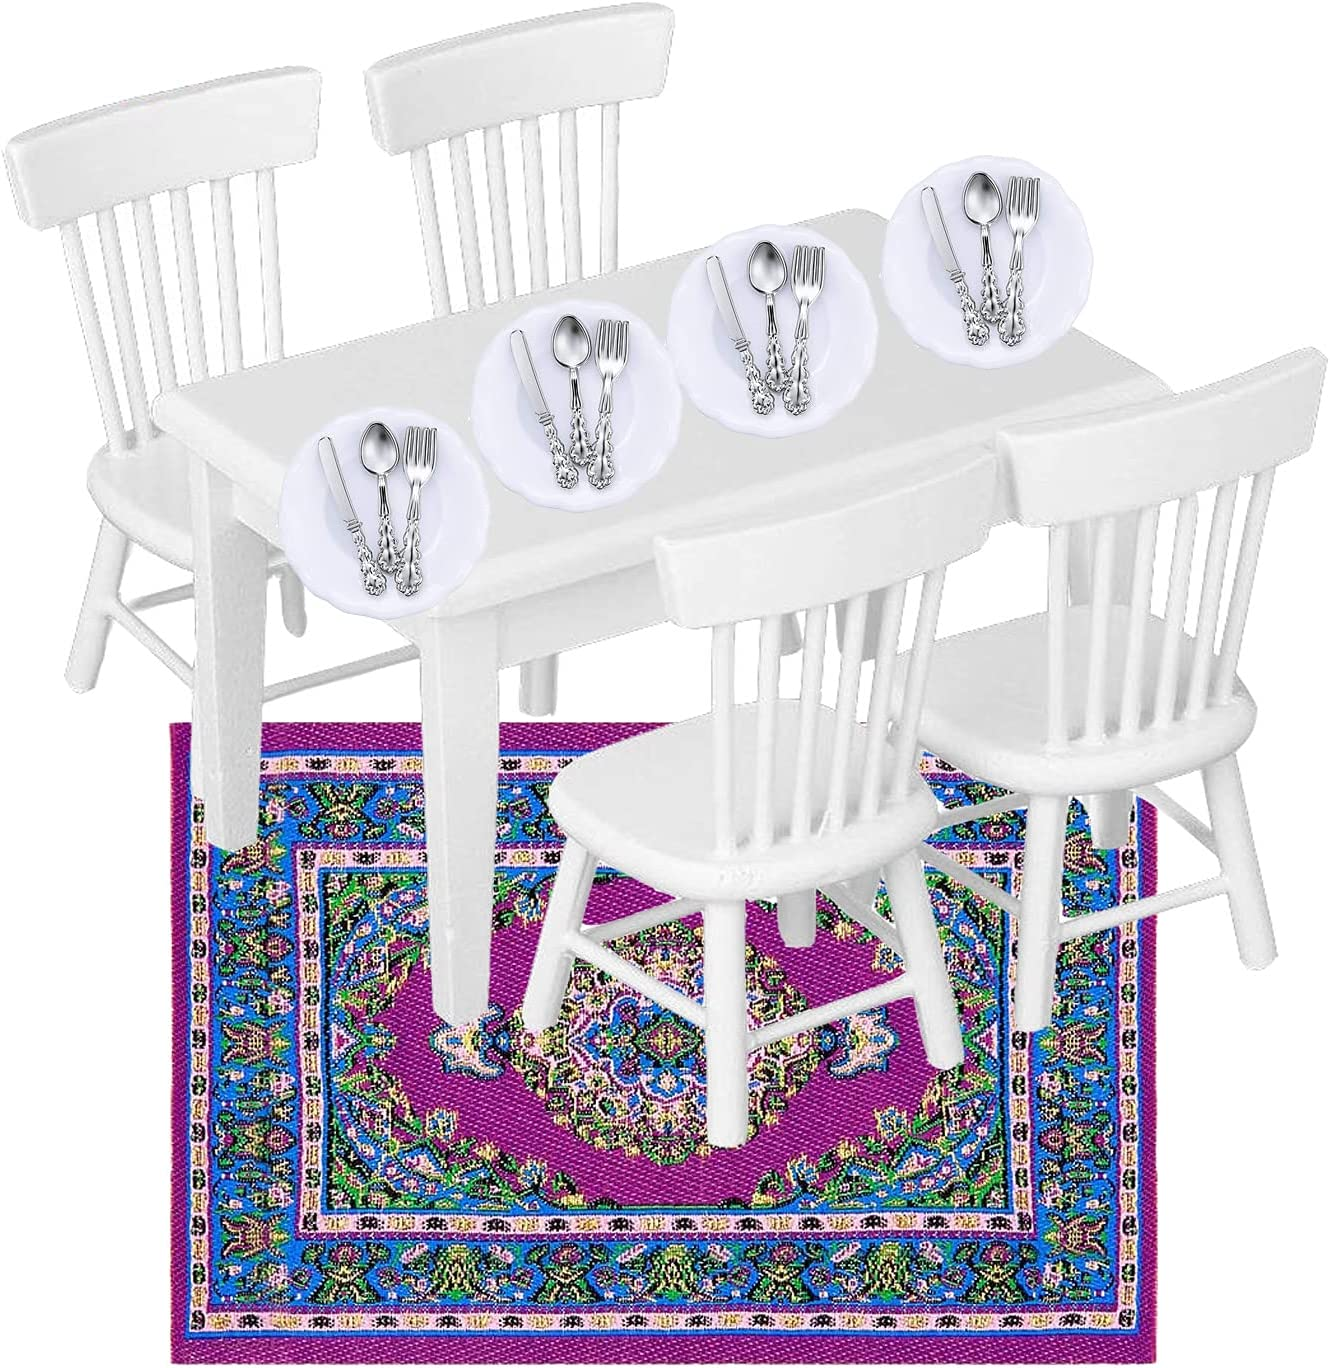 22Pcs Dollhouse Furniture Set, 1/12 Dollhouse Decoration 1Pc Wooden Dining Table and 4Pcs Chair, 1Pc Mini Carpet Turkey Rugs, 4Pcs Plates and 12Pcs Knives Forks Spoons for Kids Gift